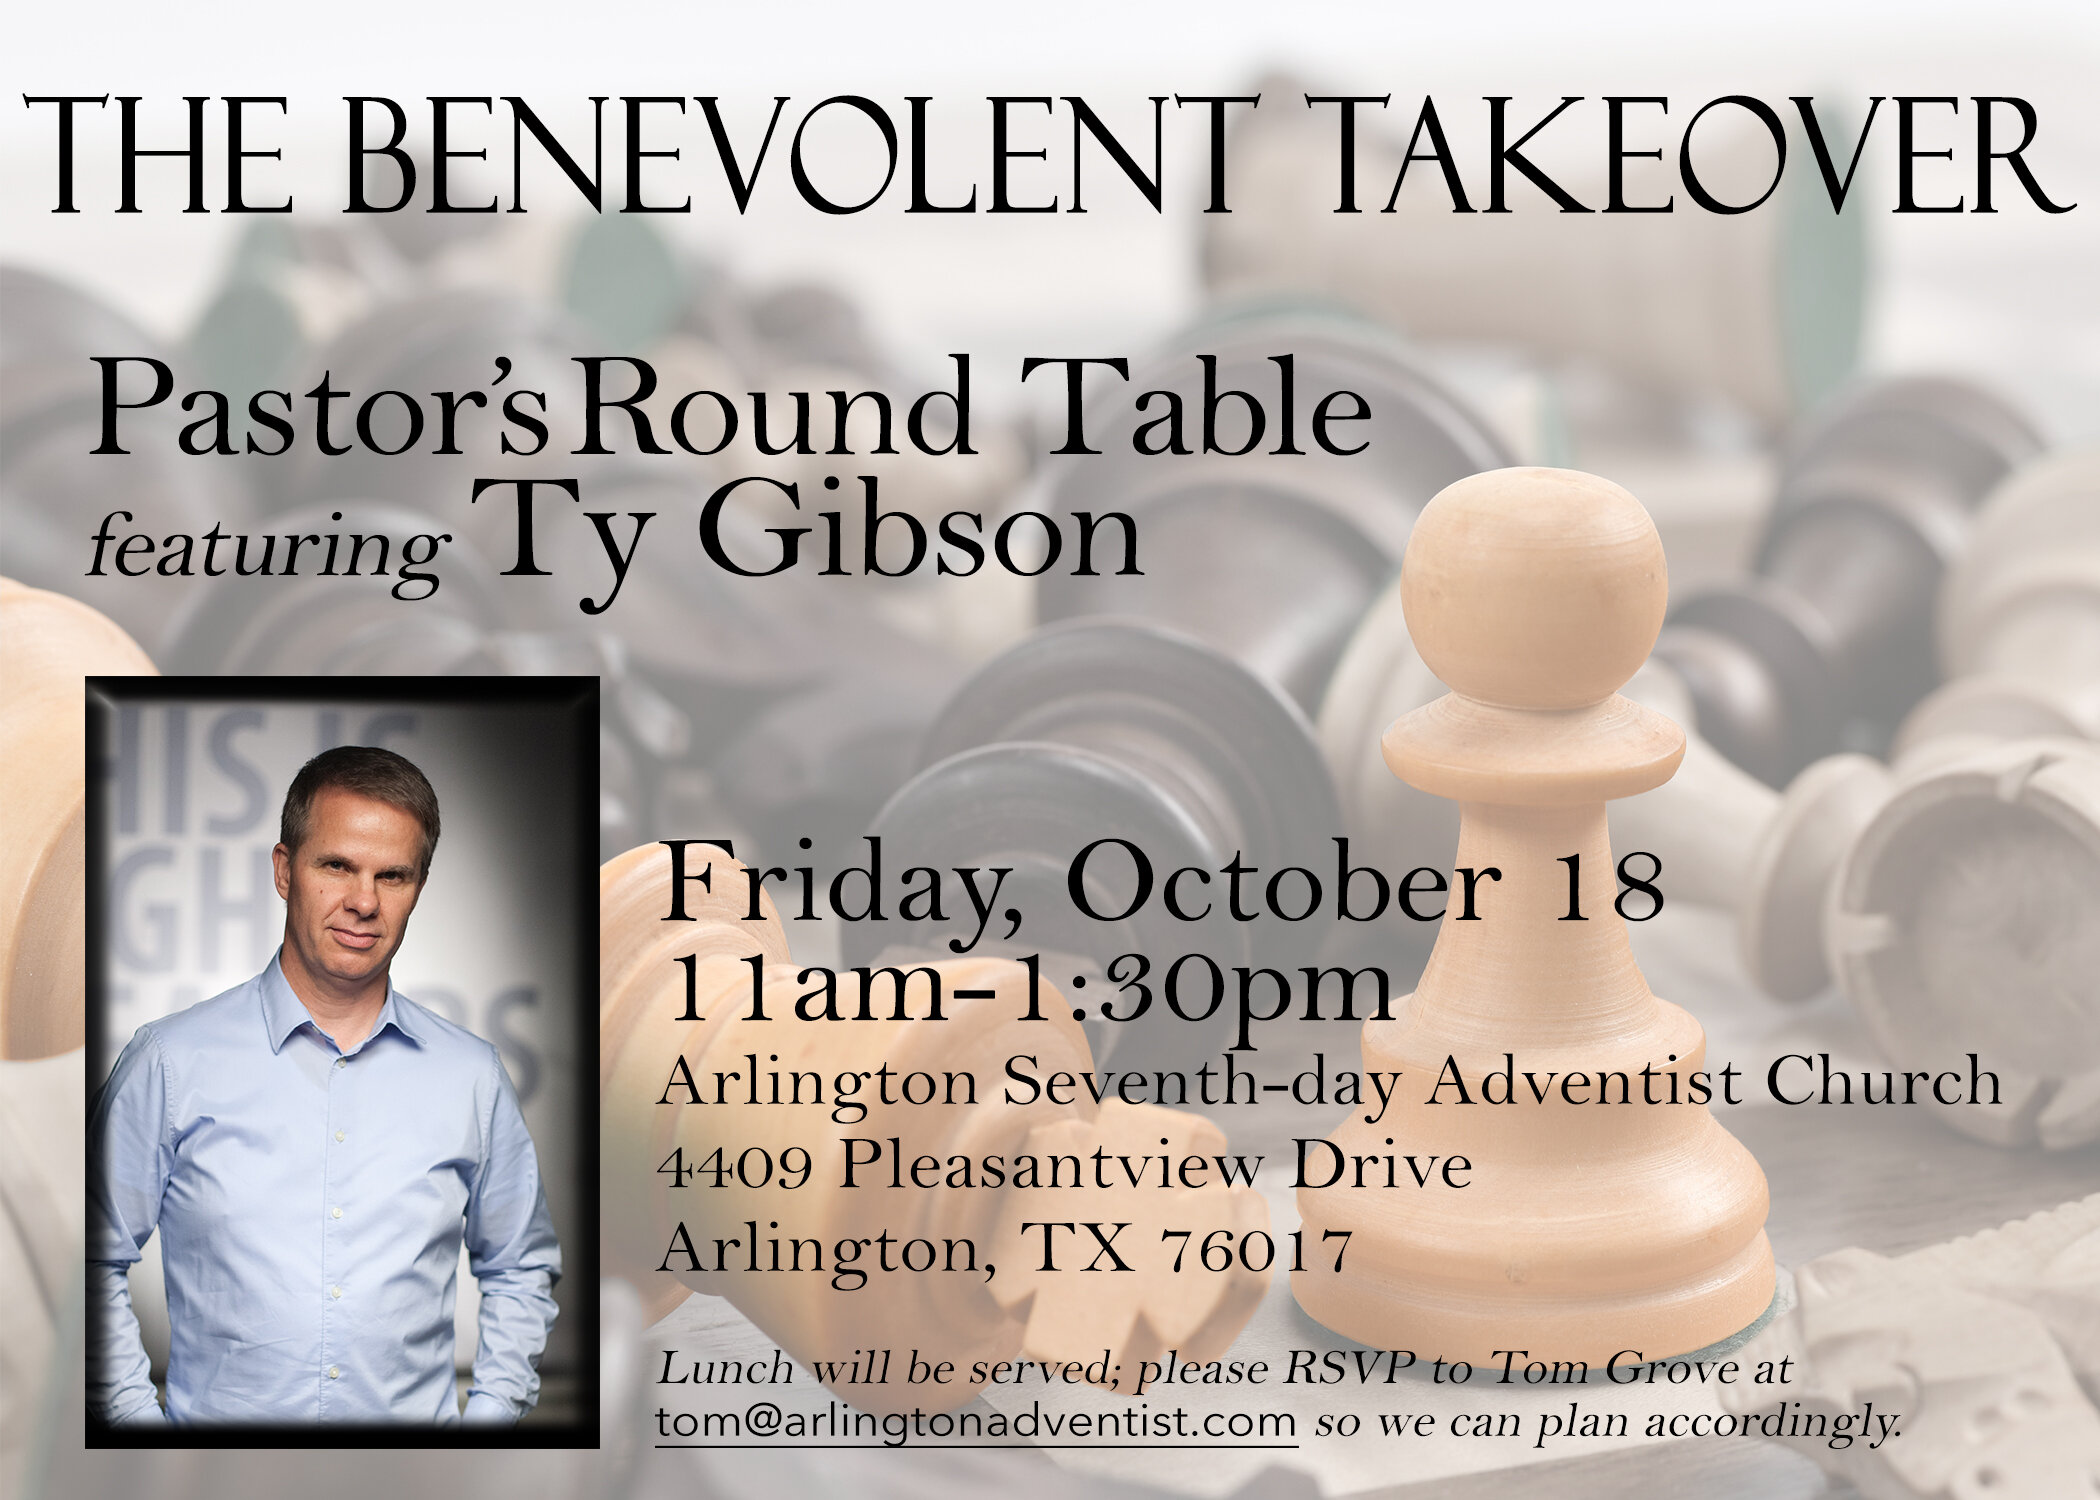 Benevolent Takeover [Ministry Round Table with Ty Gibson] October 18, Friday, 11:00AM  Fellowship Hall, Arlington Seventh-day Adventist Church 4409 Pleasantview Drive, Arlington, TX 76017  Pastors, ministerial students, ministry professionals, and church administrators are invited to this free luncheon with Light Bearers' co-director Ty Gibson. To RSVP and for more infomration, contact  Dr. Tom Grove .